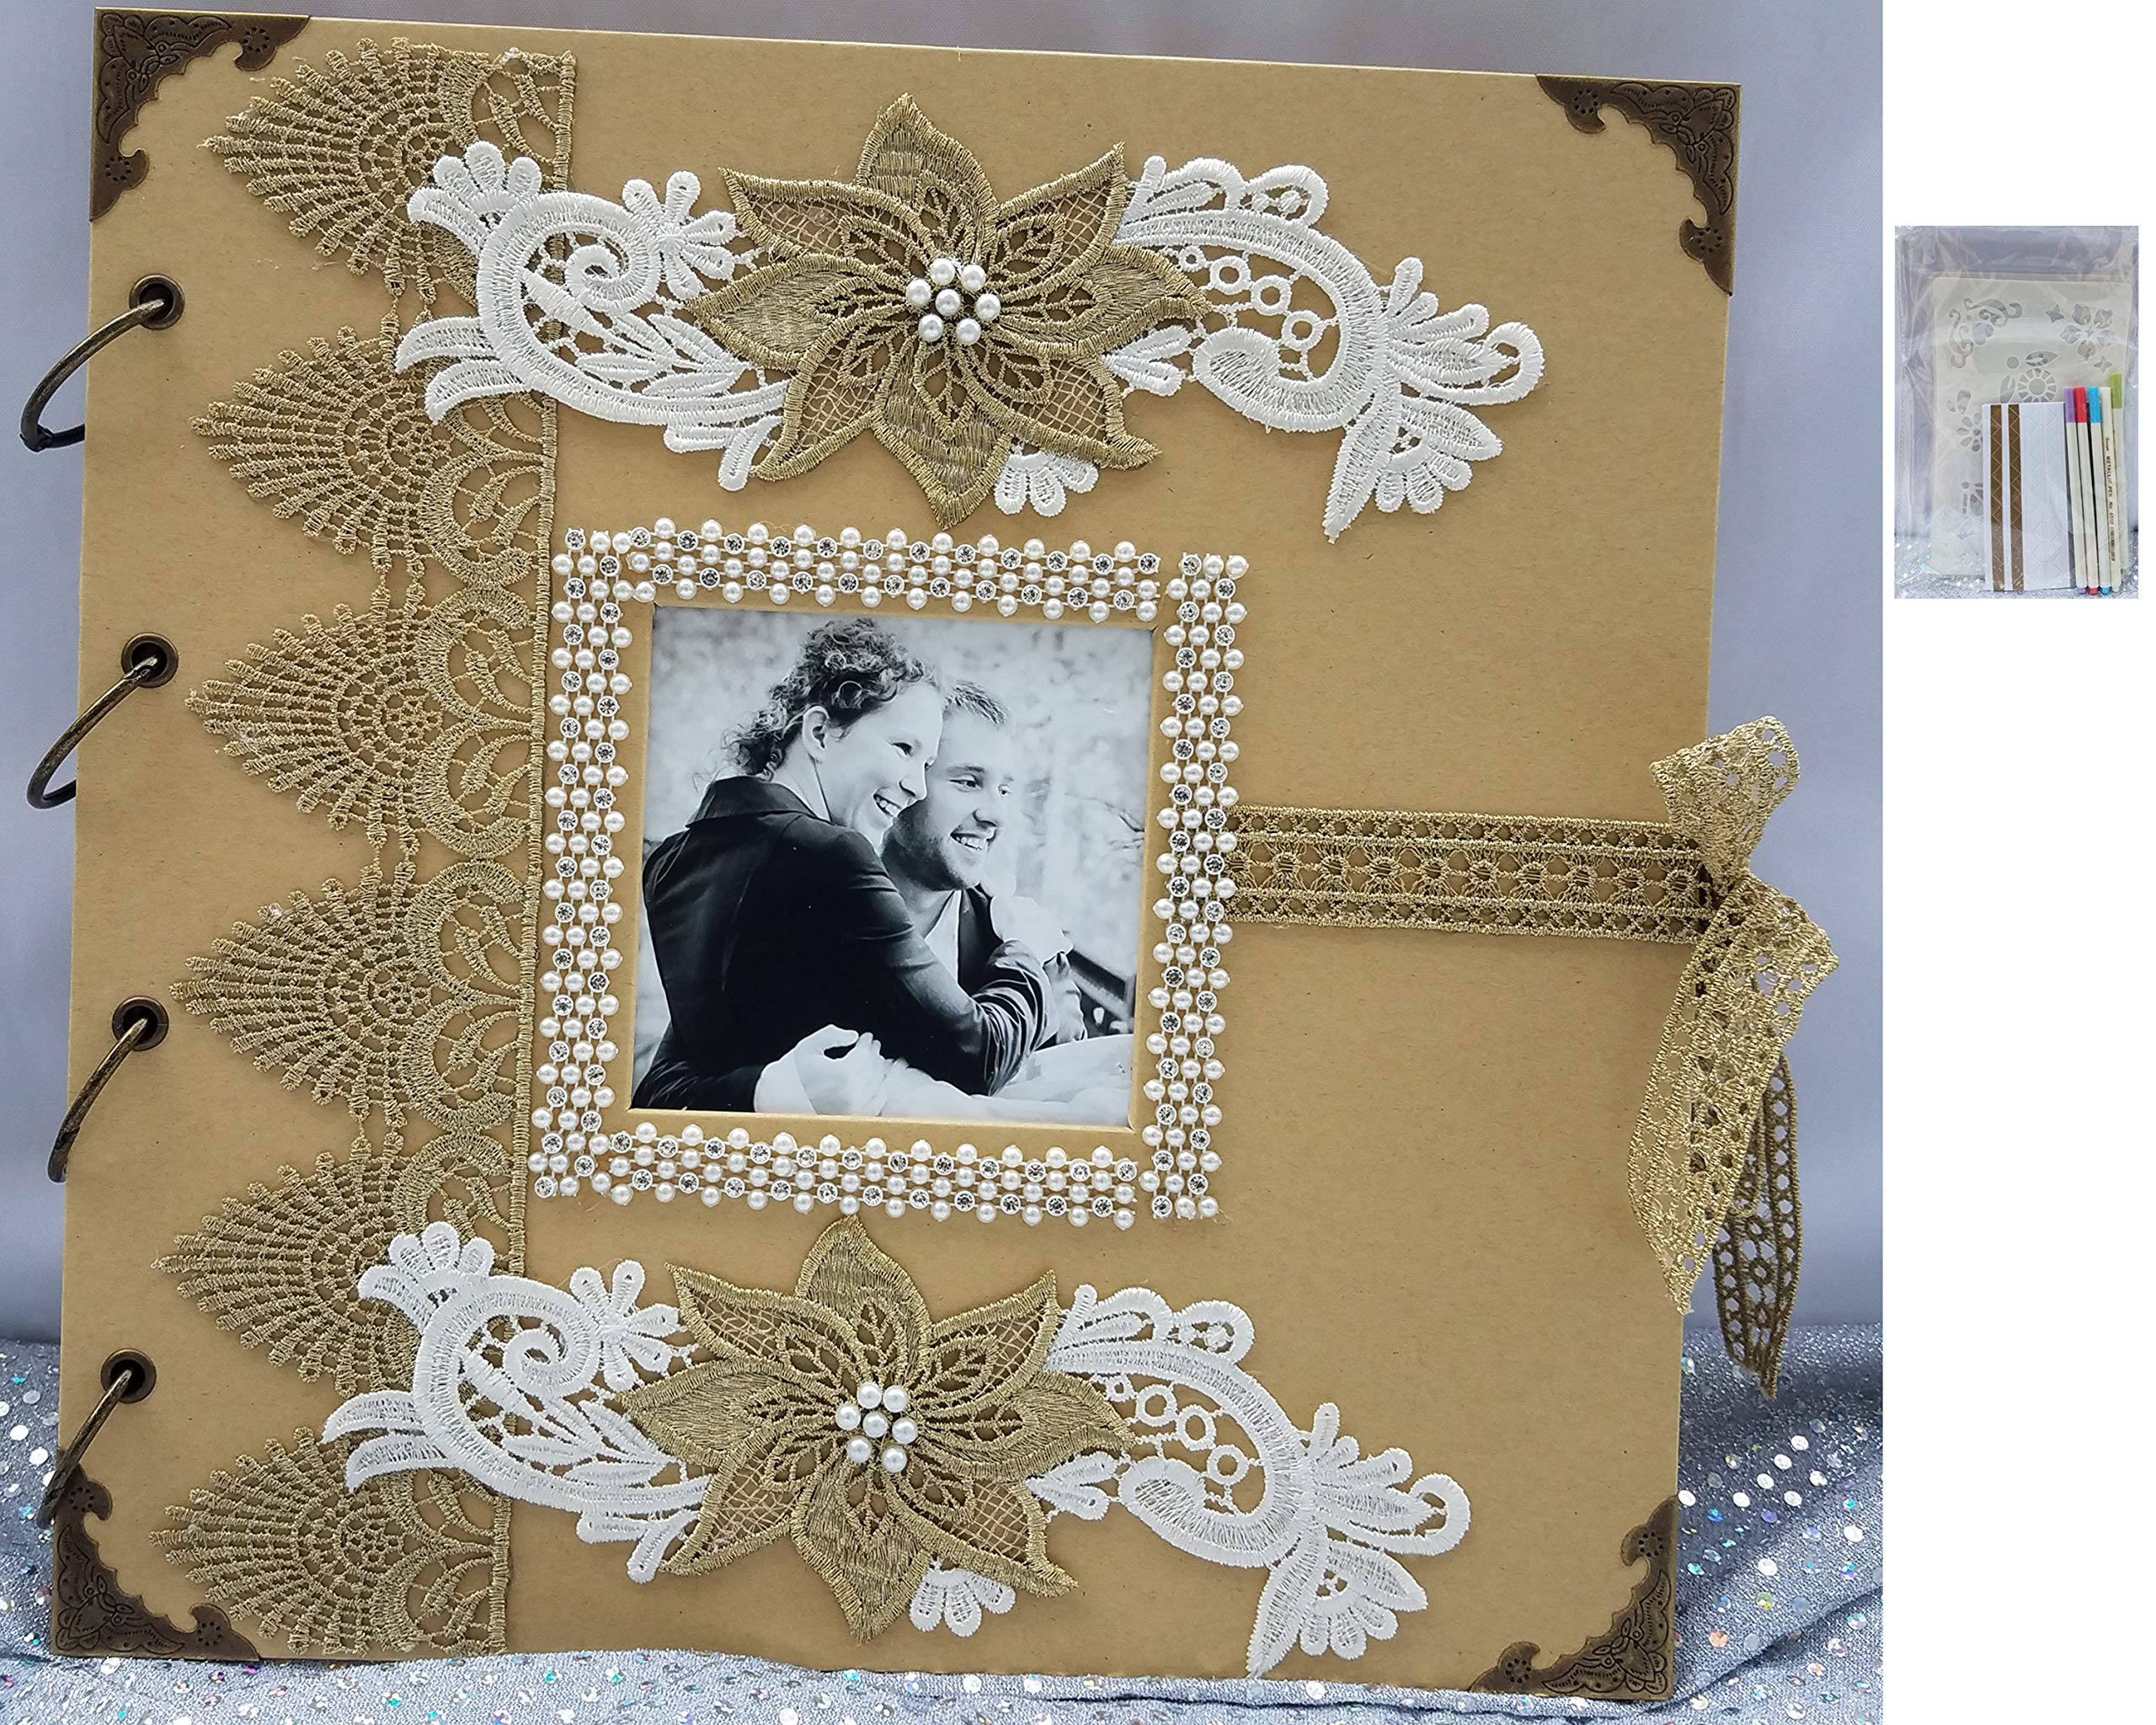 Towdah Perez Large Vintage Wedding Scrapbook Album Wedding Polaroid Photo Guest Book Memory Guest Book. Hand-Decorated with lace, Flowers, Pearls, Bling, Crotchet lace Ribbon tie. 100 Pages (Gold)